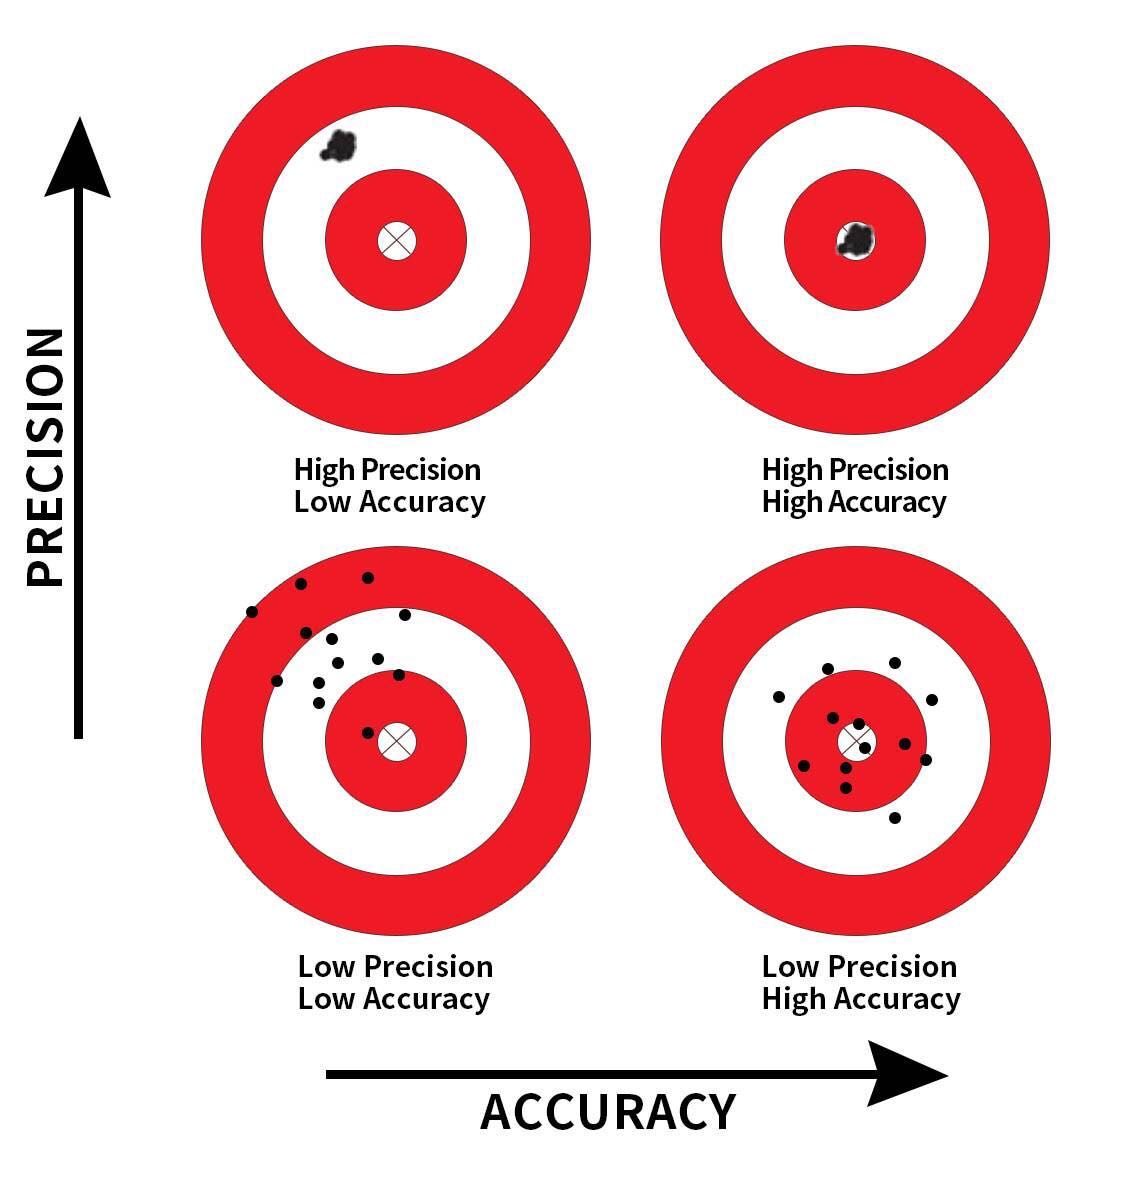 Comparing accuracy and precision